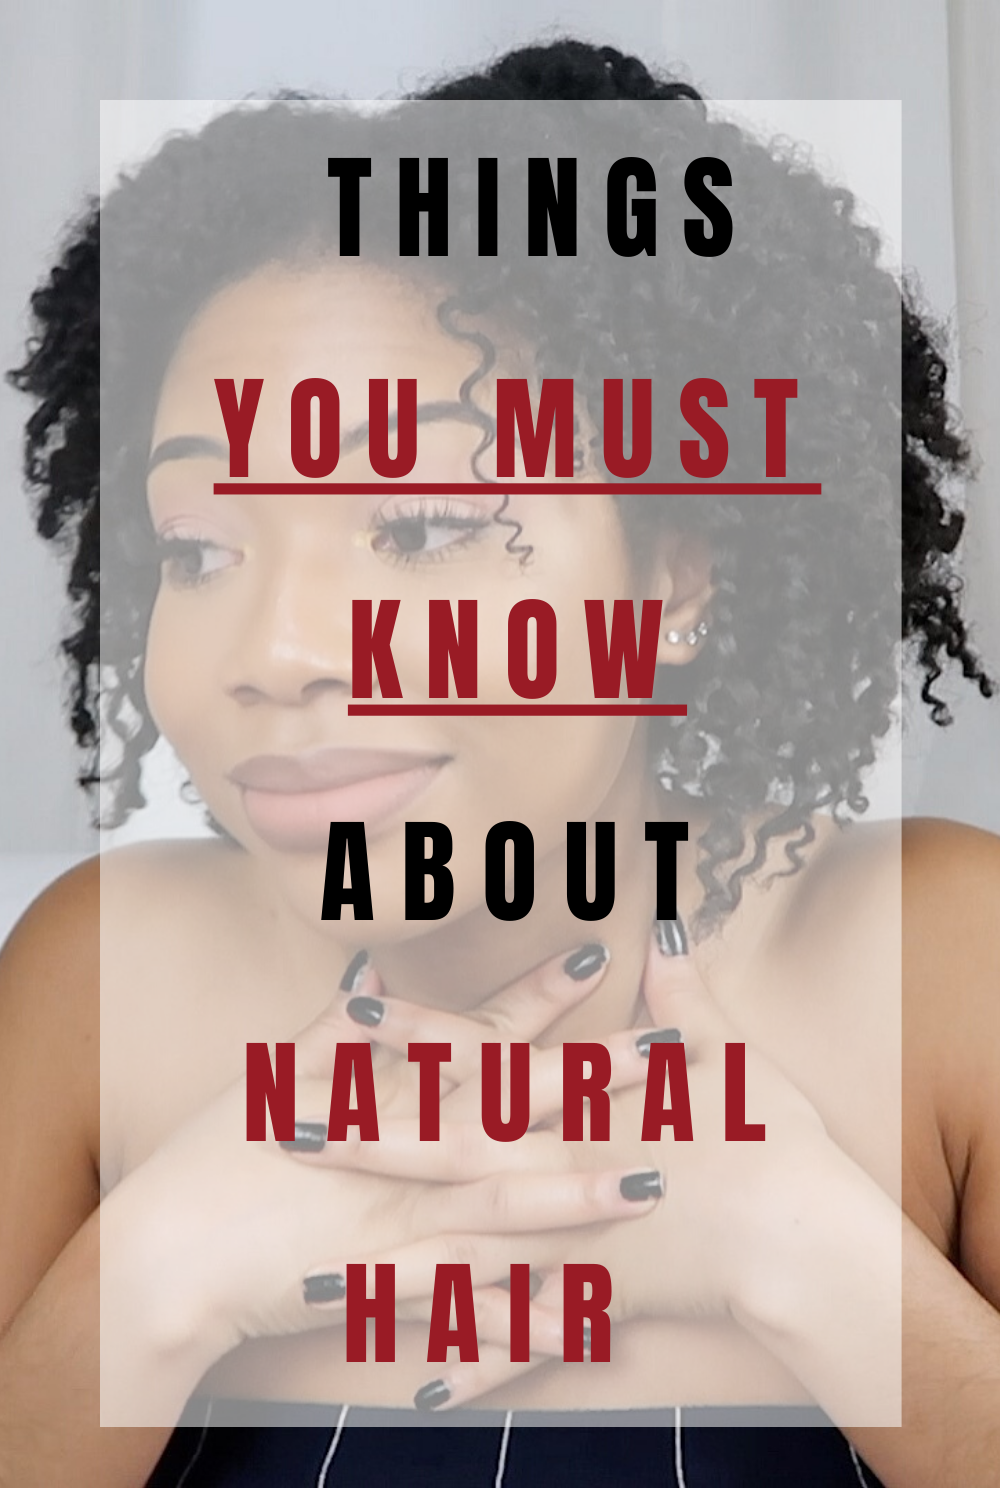 Things I wish I knew before going natural and before starting my natural hair journey. This video will be useful if you're learning how to go natural and curious about some things to know before going natural. #goingnatural #howtotransitiontonaturalhair #transitionhair #howtogonatural #gonatural #naturalhairgrow #naturalhaircare #naturalhairregimen #naturalhairtips #naturalhair  #hairgrowth #4chair #4c #naturalhaircommunity